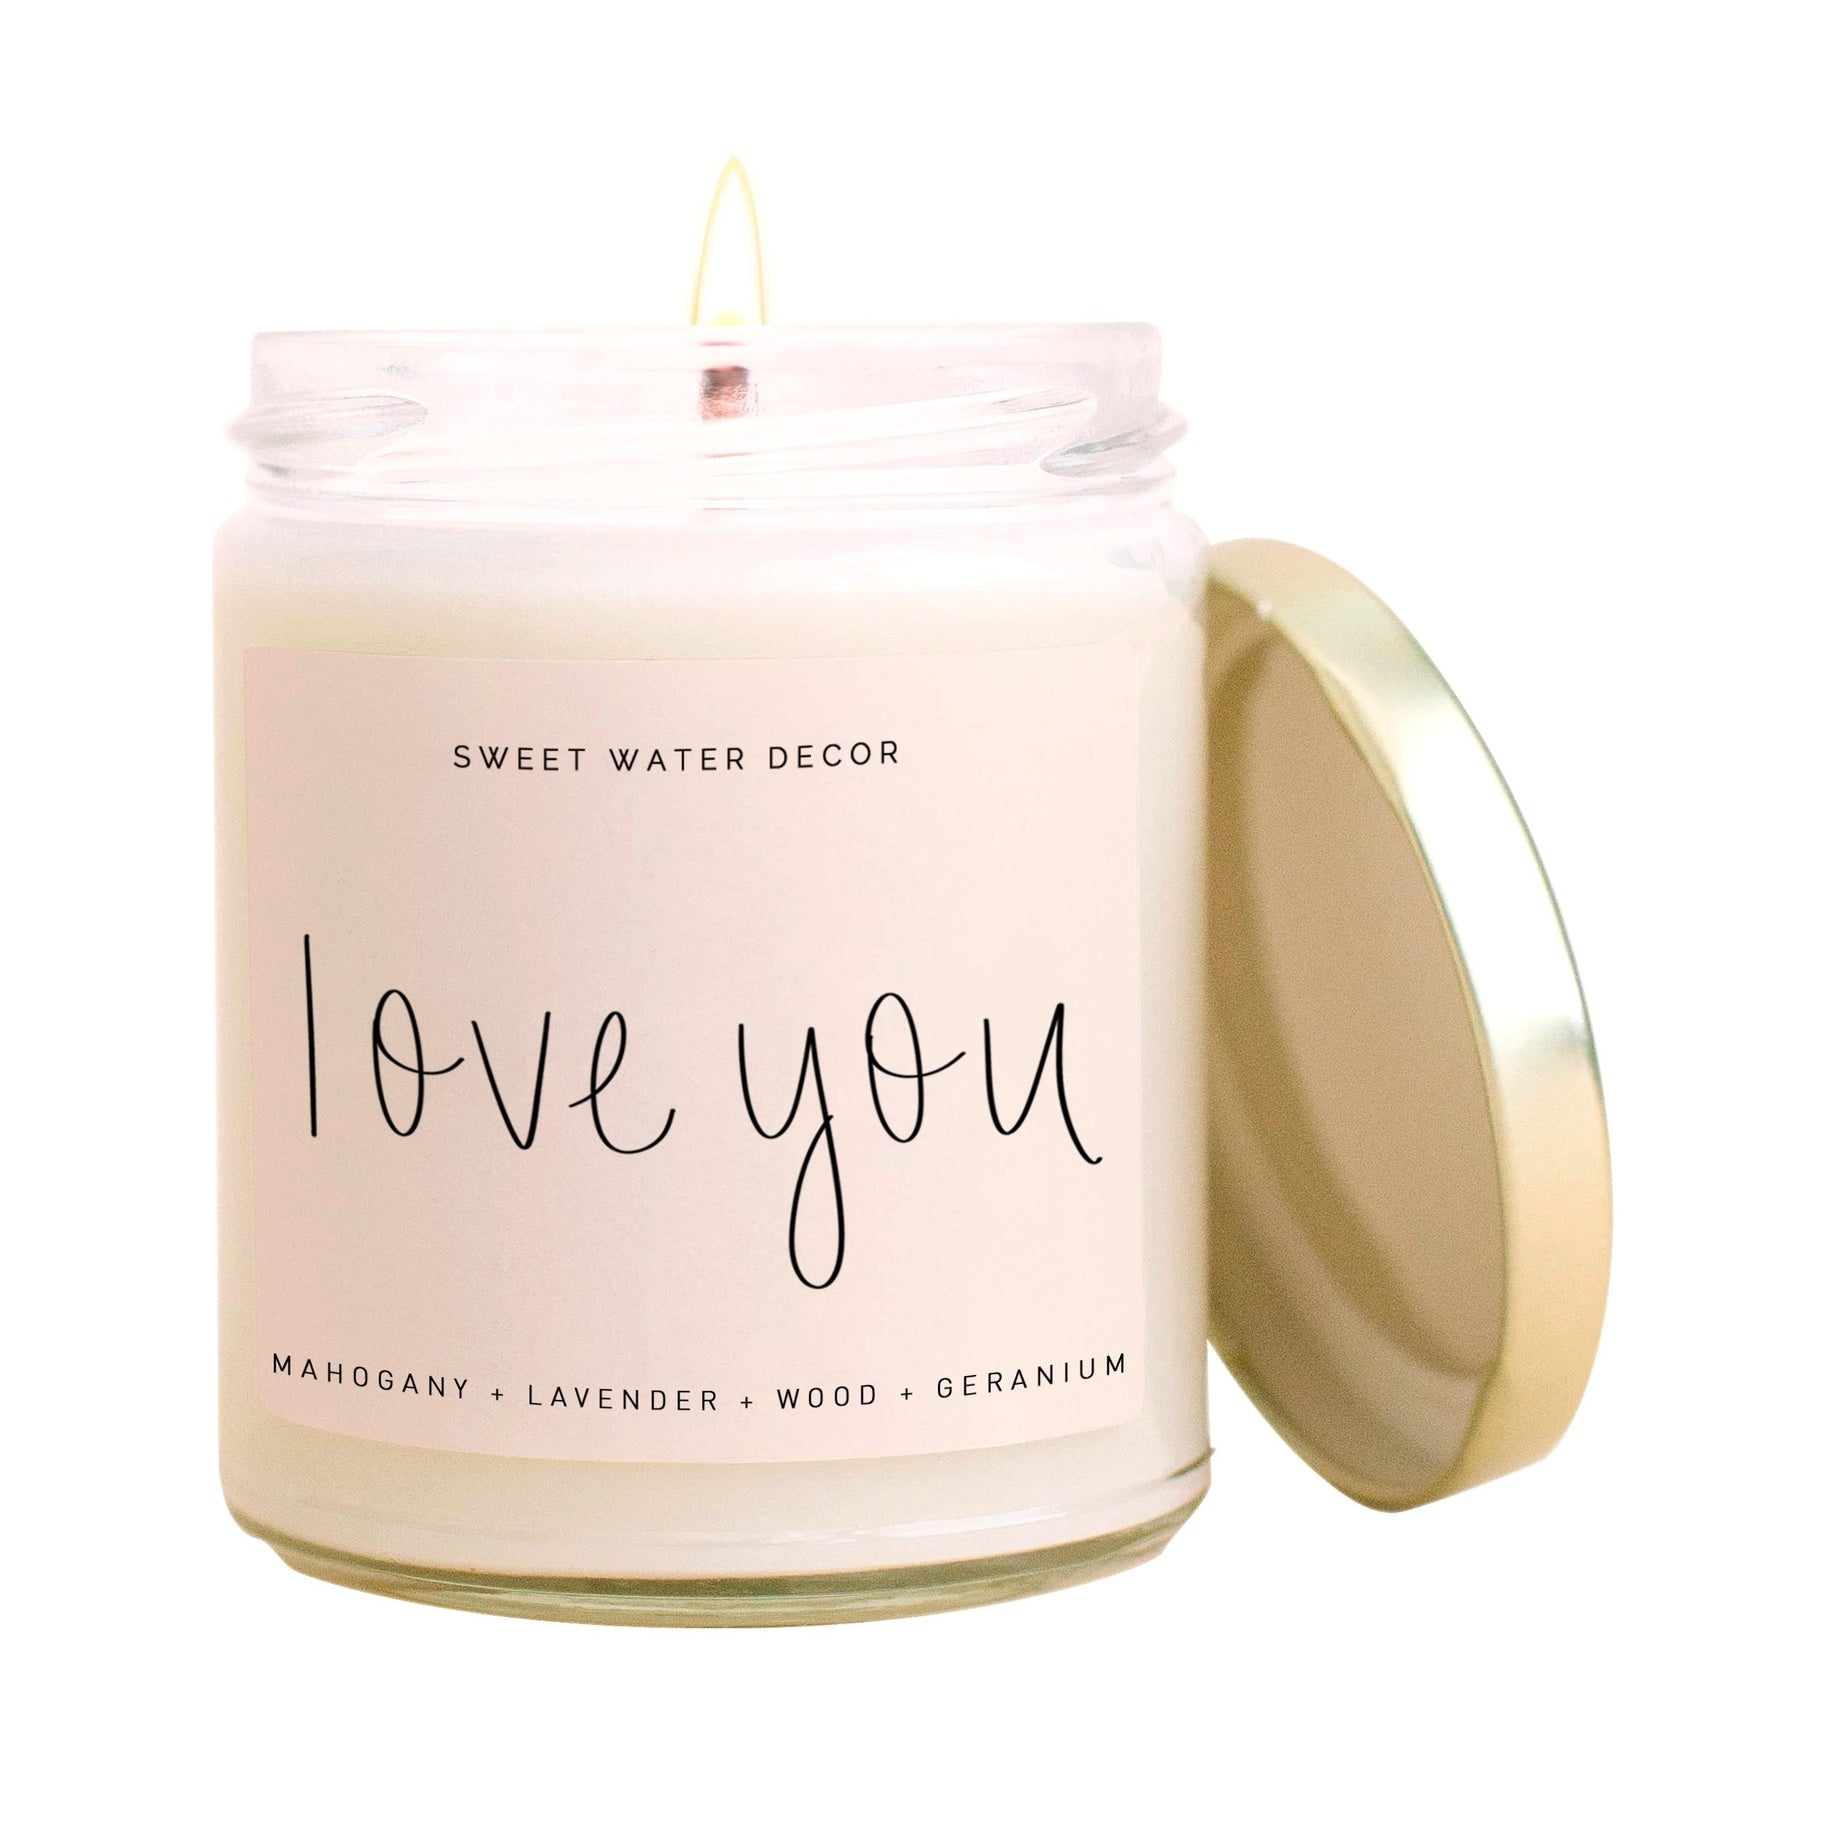 "Clear glass candle filled with white soy wax with a lit wick. The gold lid is propped against the side of the jar. The blush pink sweet water decor label reads ""love you"" in a tin black cursive font"